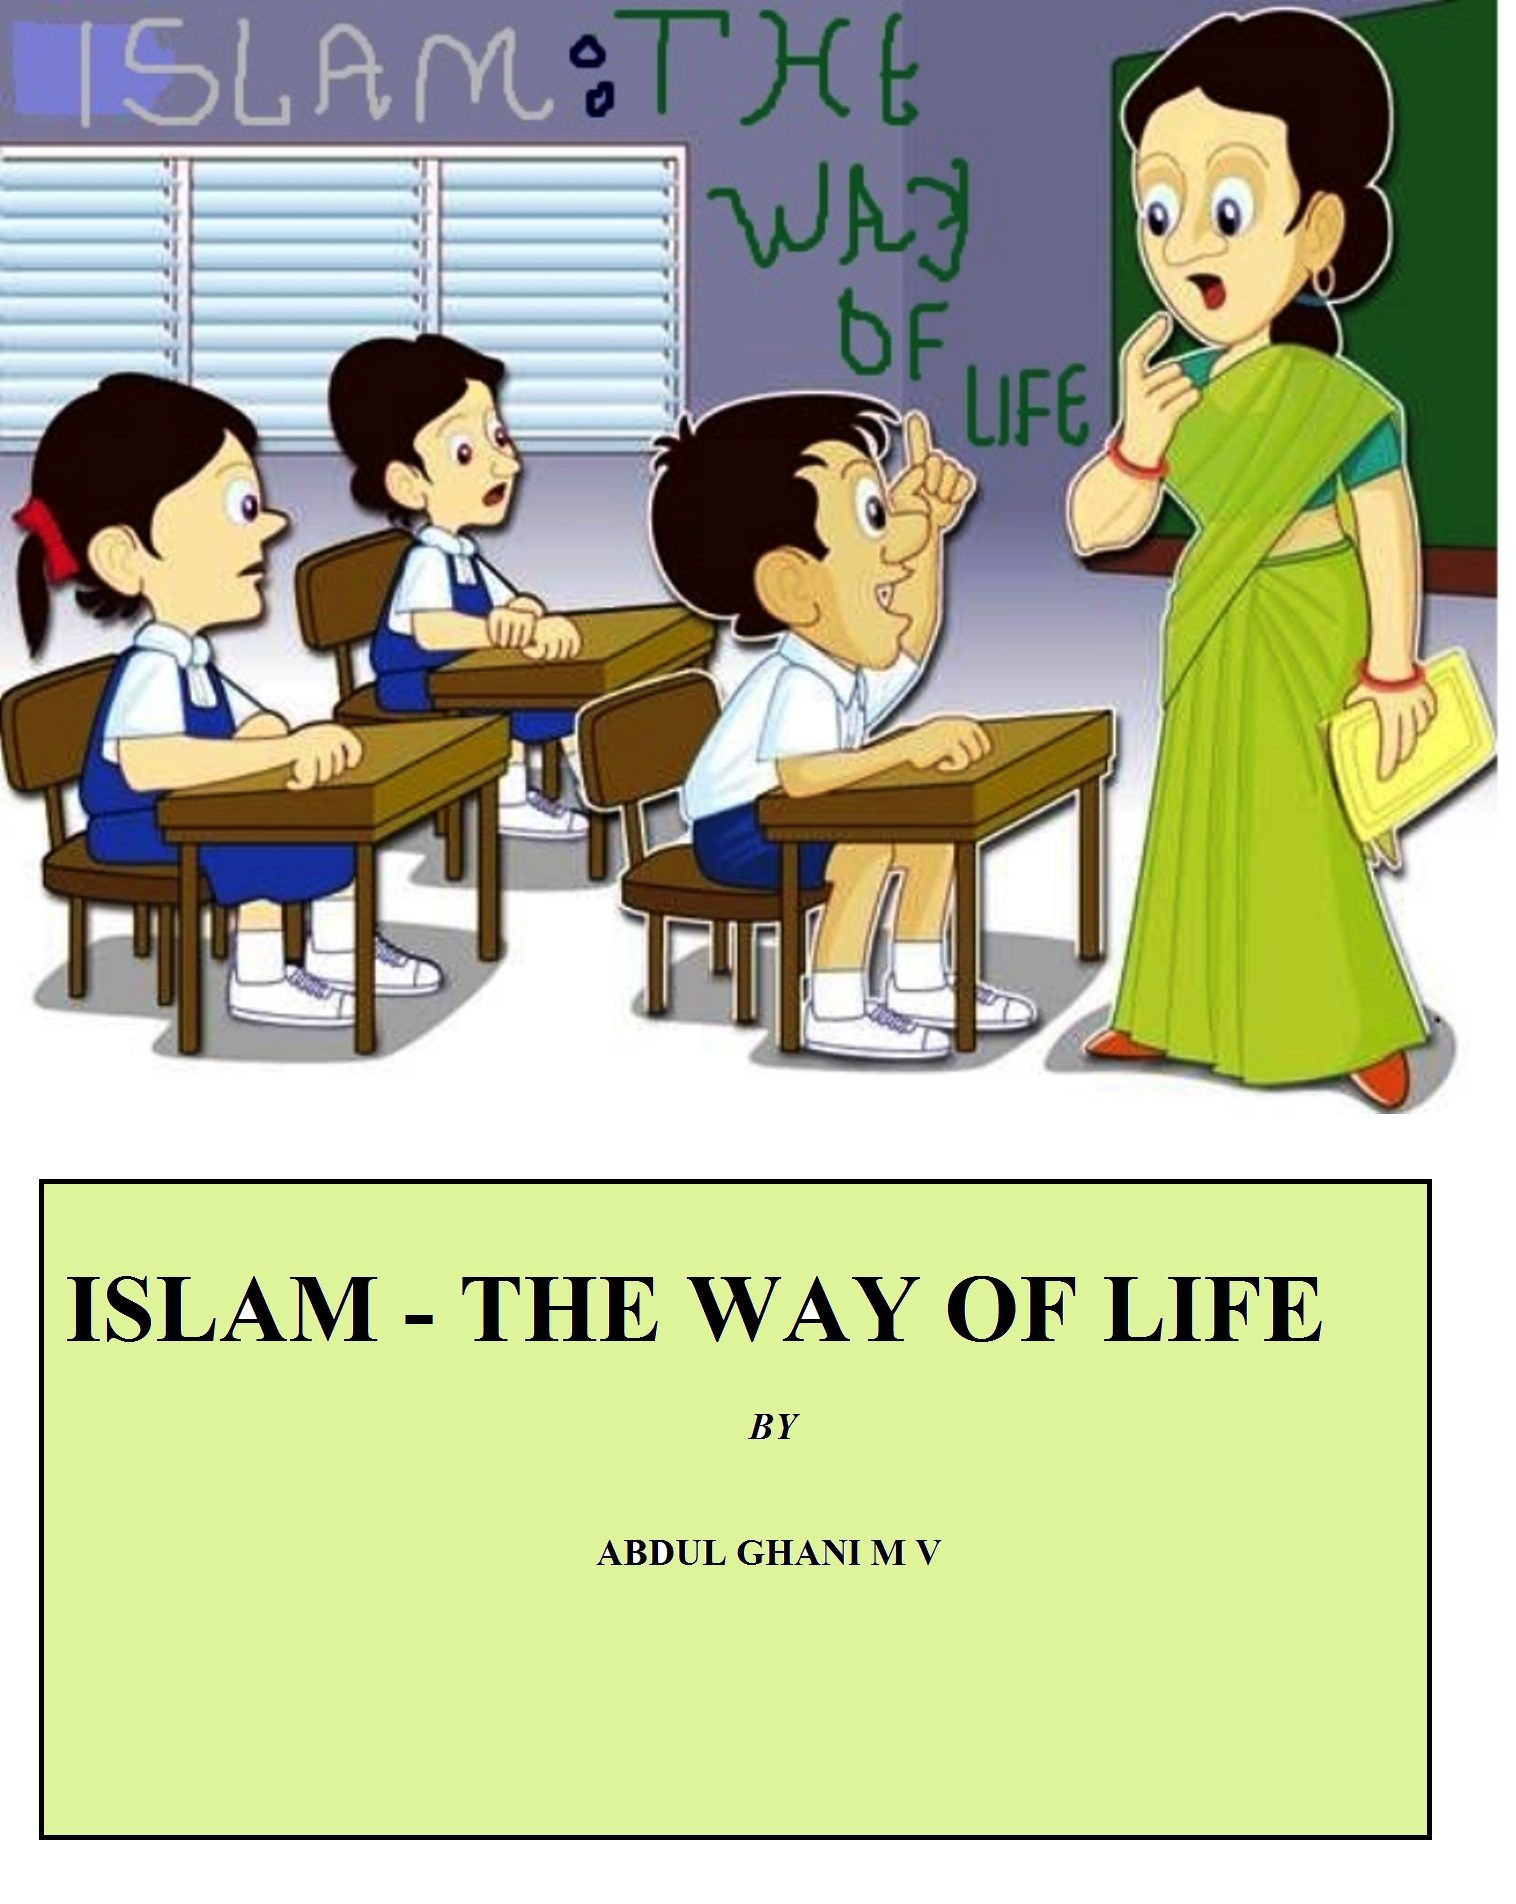 Islam - The Way of Life, an Ebook by Abdul Ghani M V